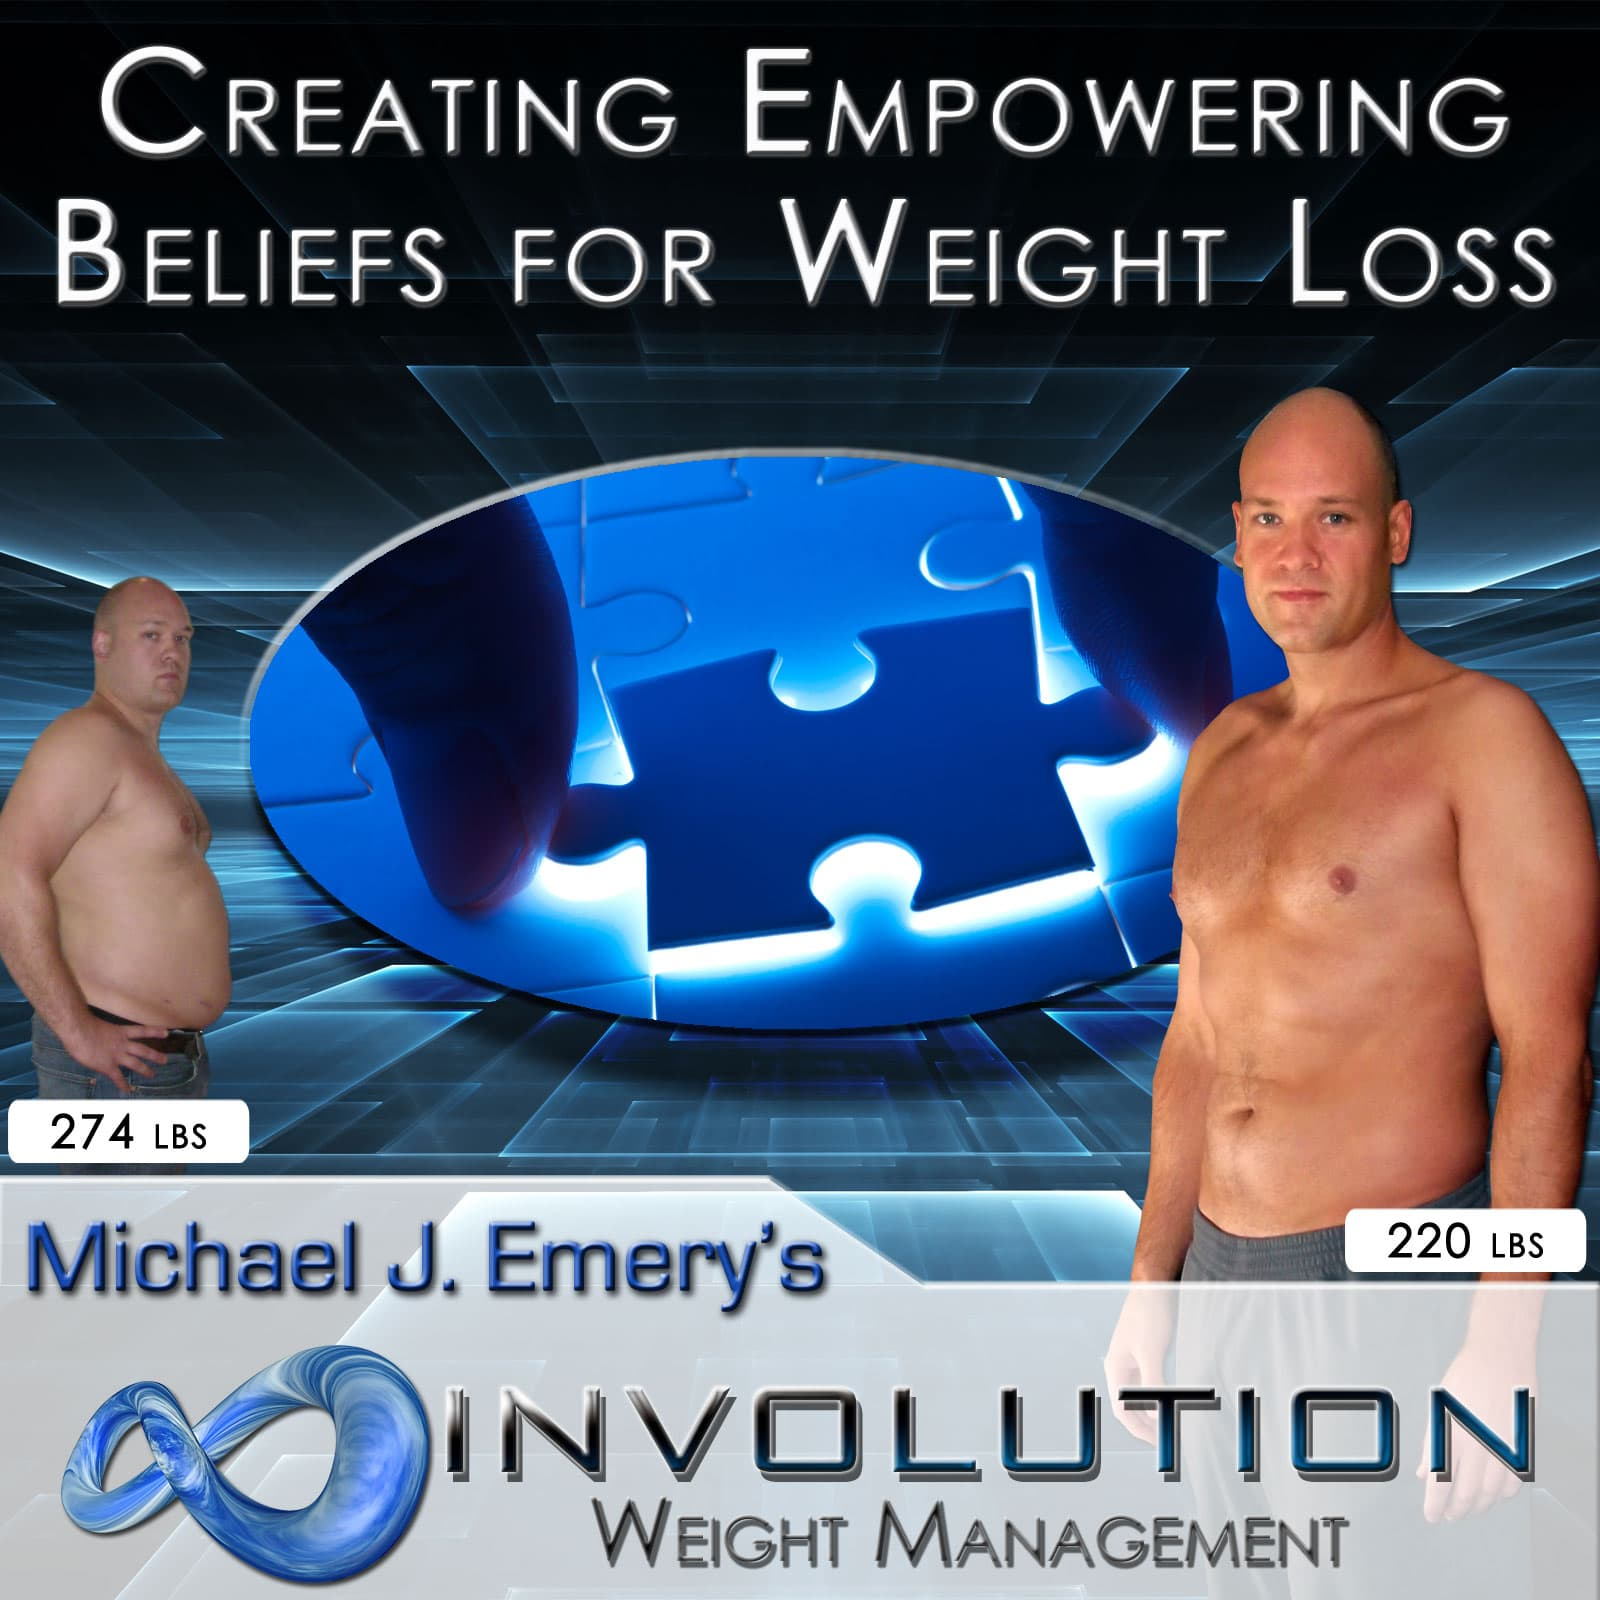 Beliefs for weight loss